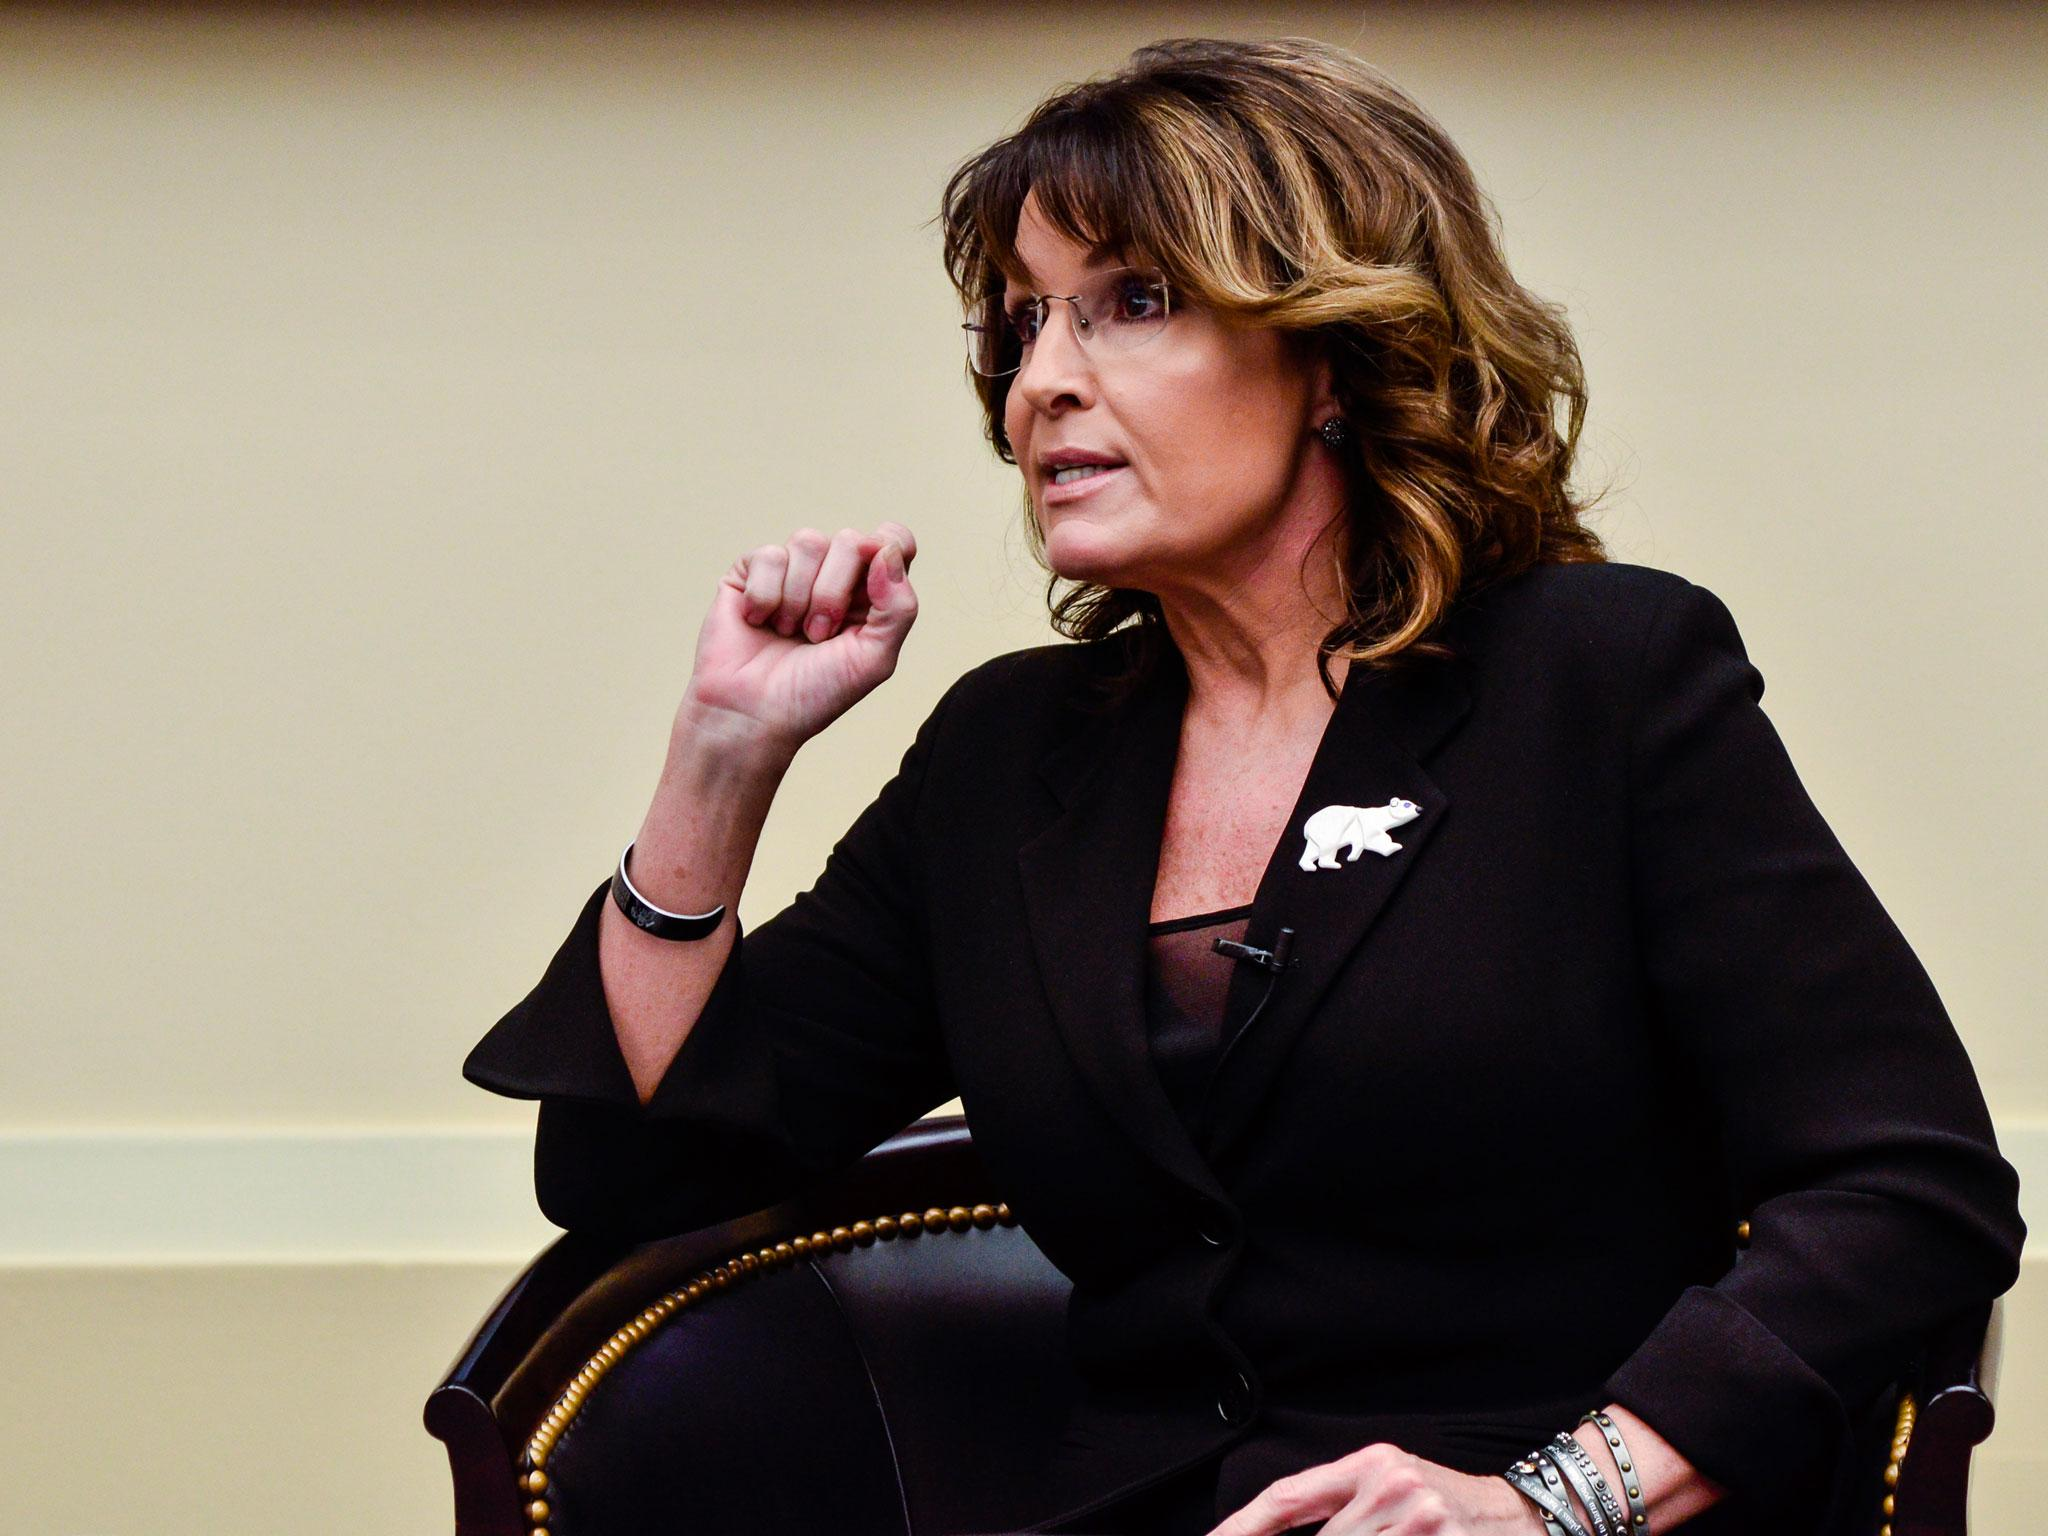 Sarah Palin says Donald Trump's immigration reversal is 'massive disappointment'